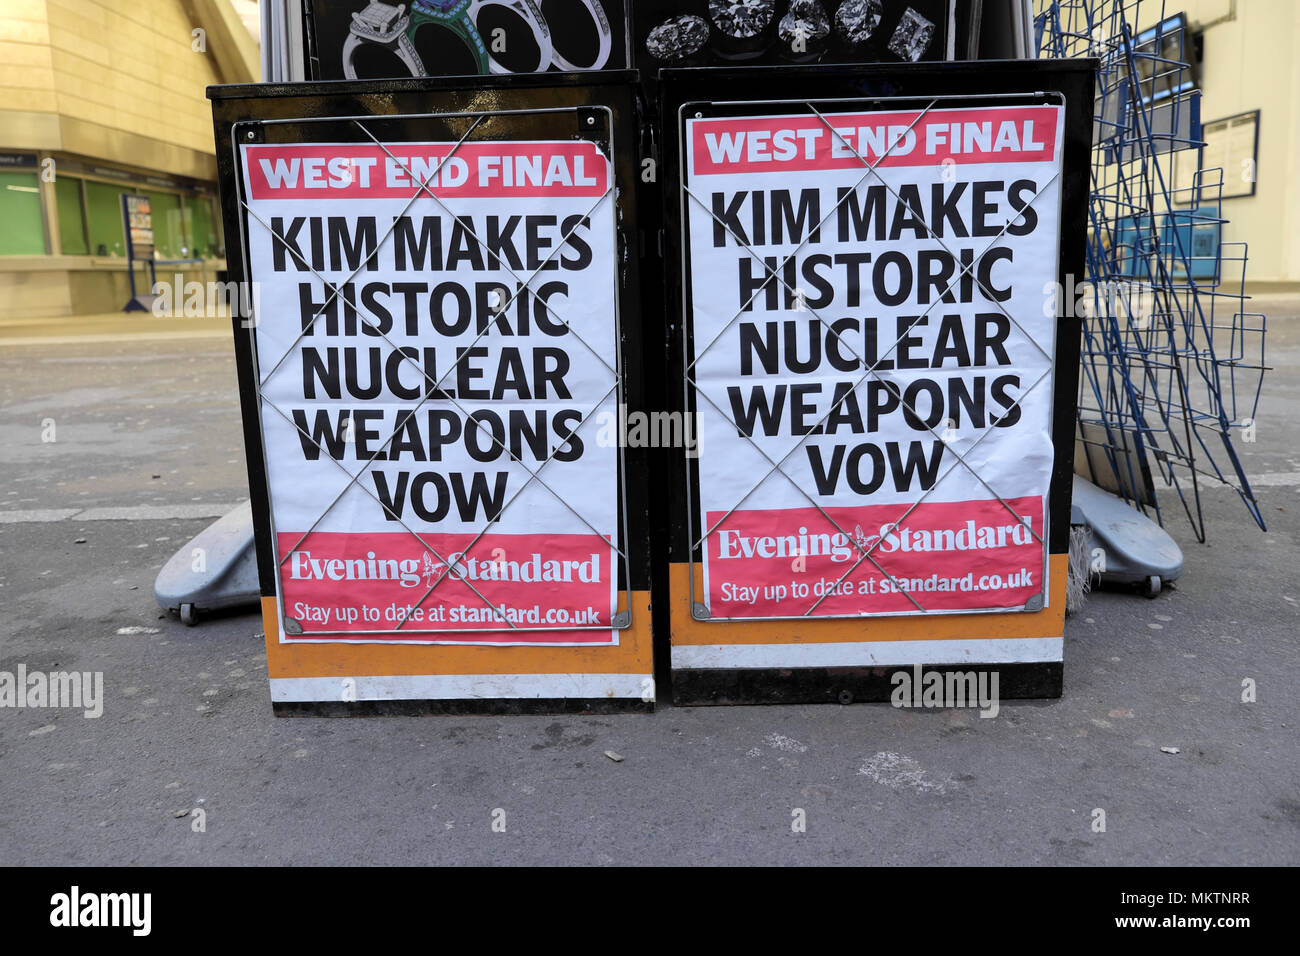 Evening Standard newspaper a poster advert 'Kim Makes Historic Nuclear Weapons Vow'  outside newsstand on 28 April 2018 in London UK - Stock Image